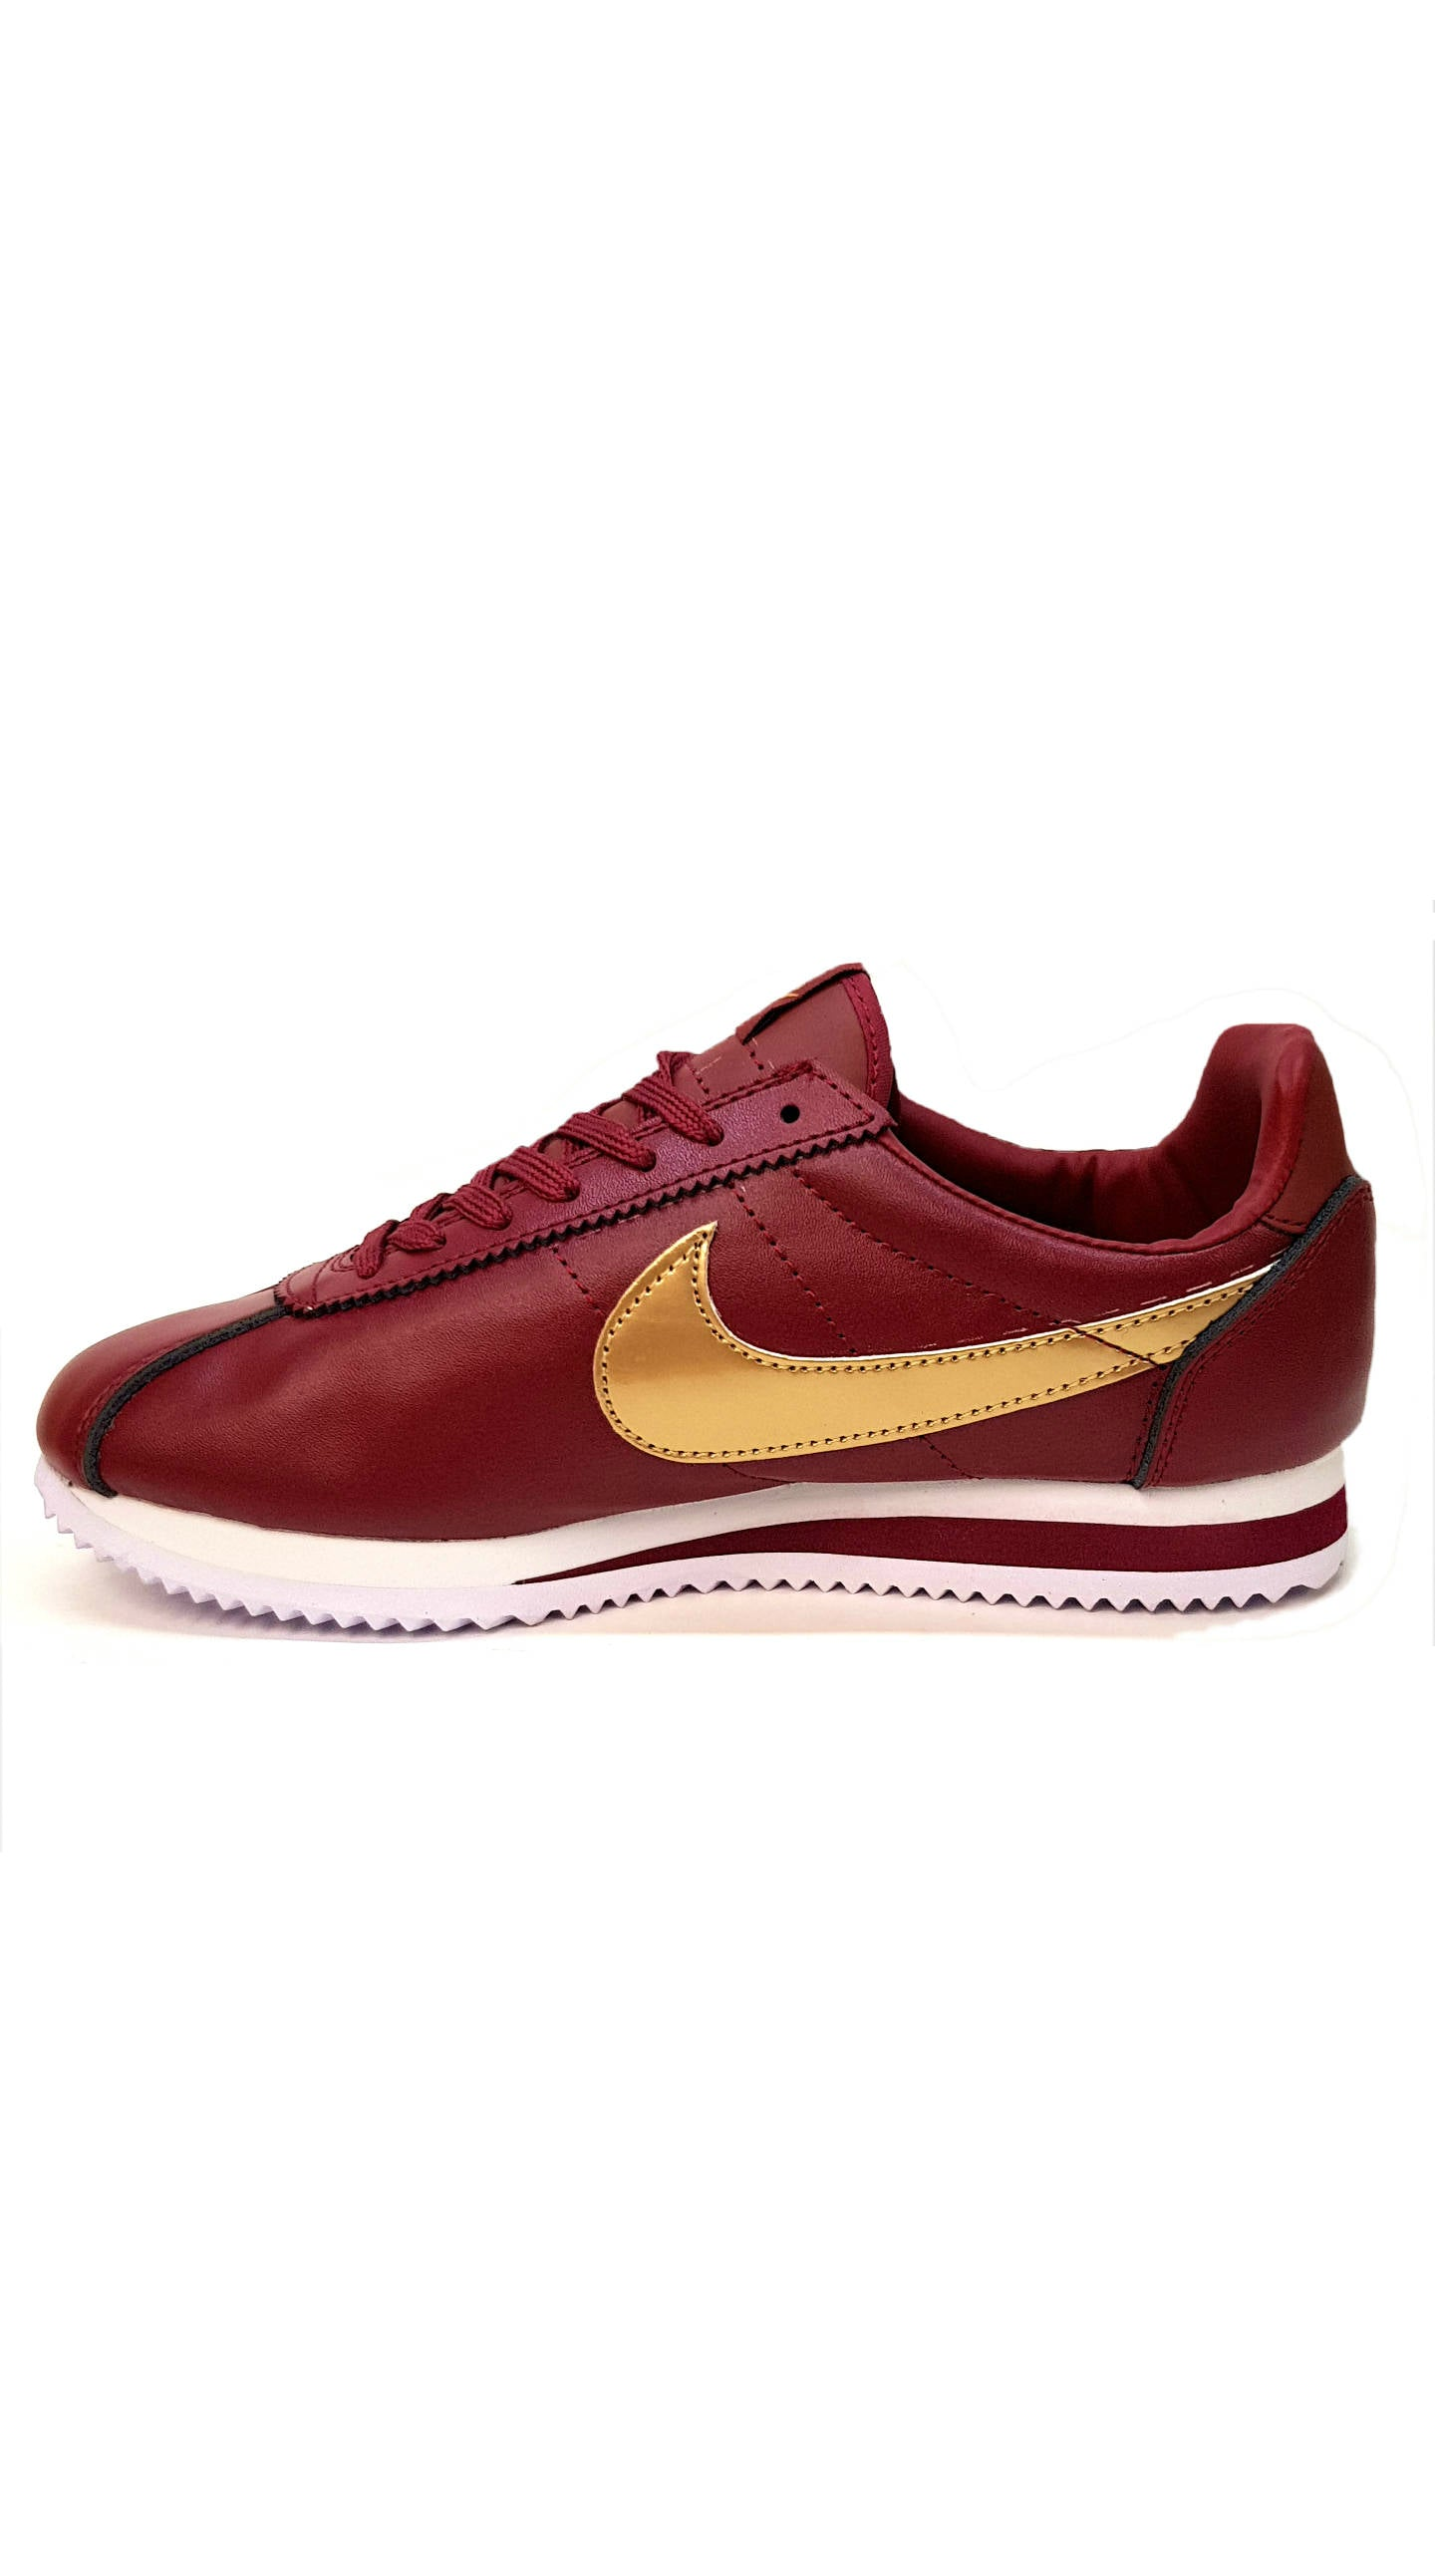 more photos 8c453 1056a Cortez Premium Leather - Maroon/Gold